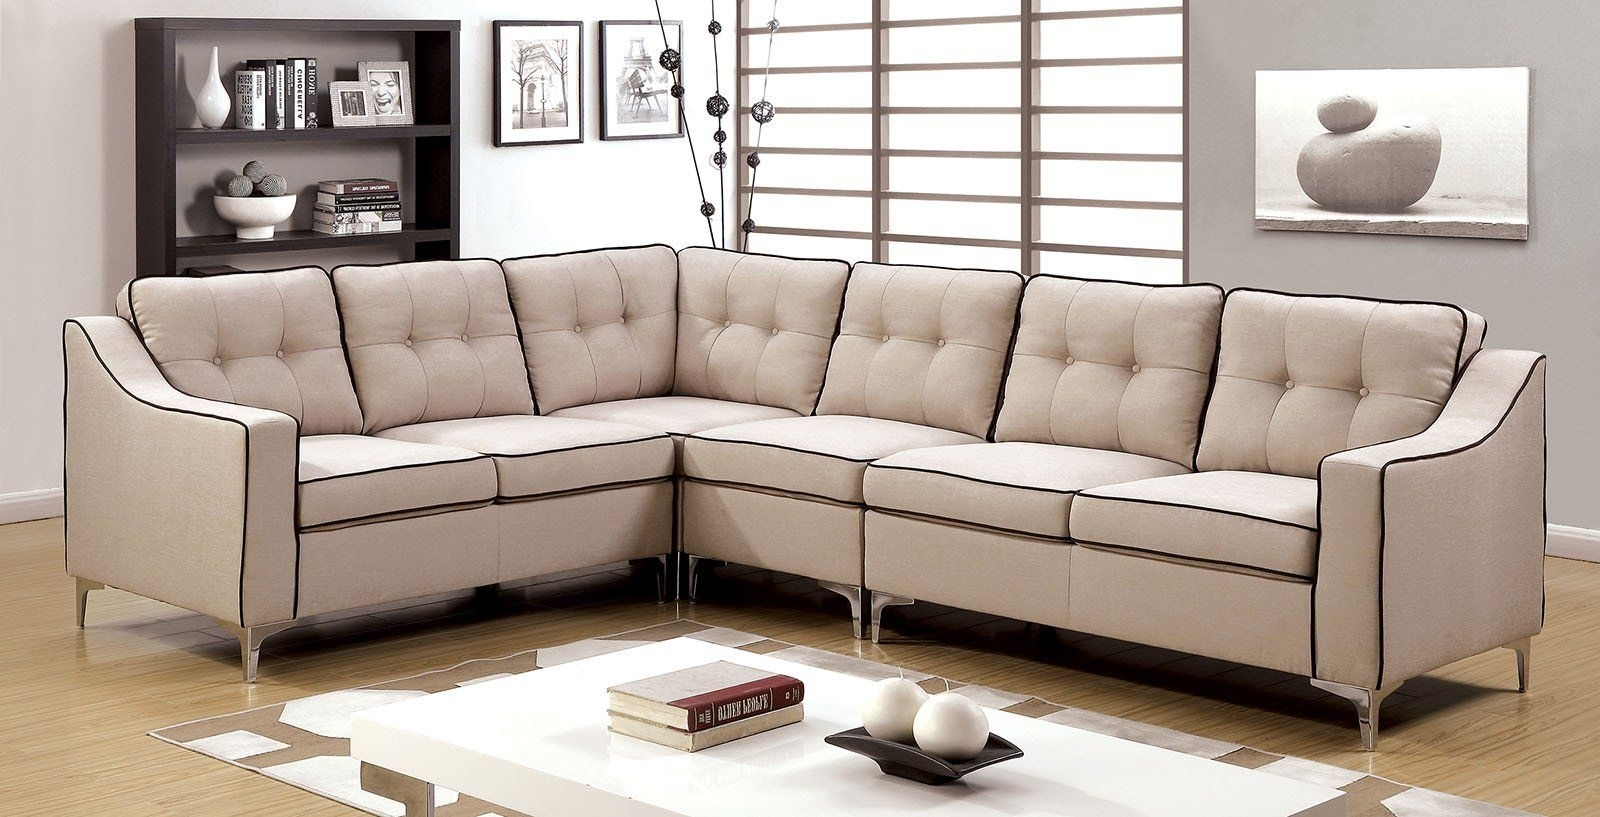 Glenda Ii Contemporary Sectional | Products intended for Aidan 4 Piece Sectionals